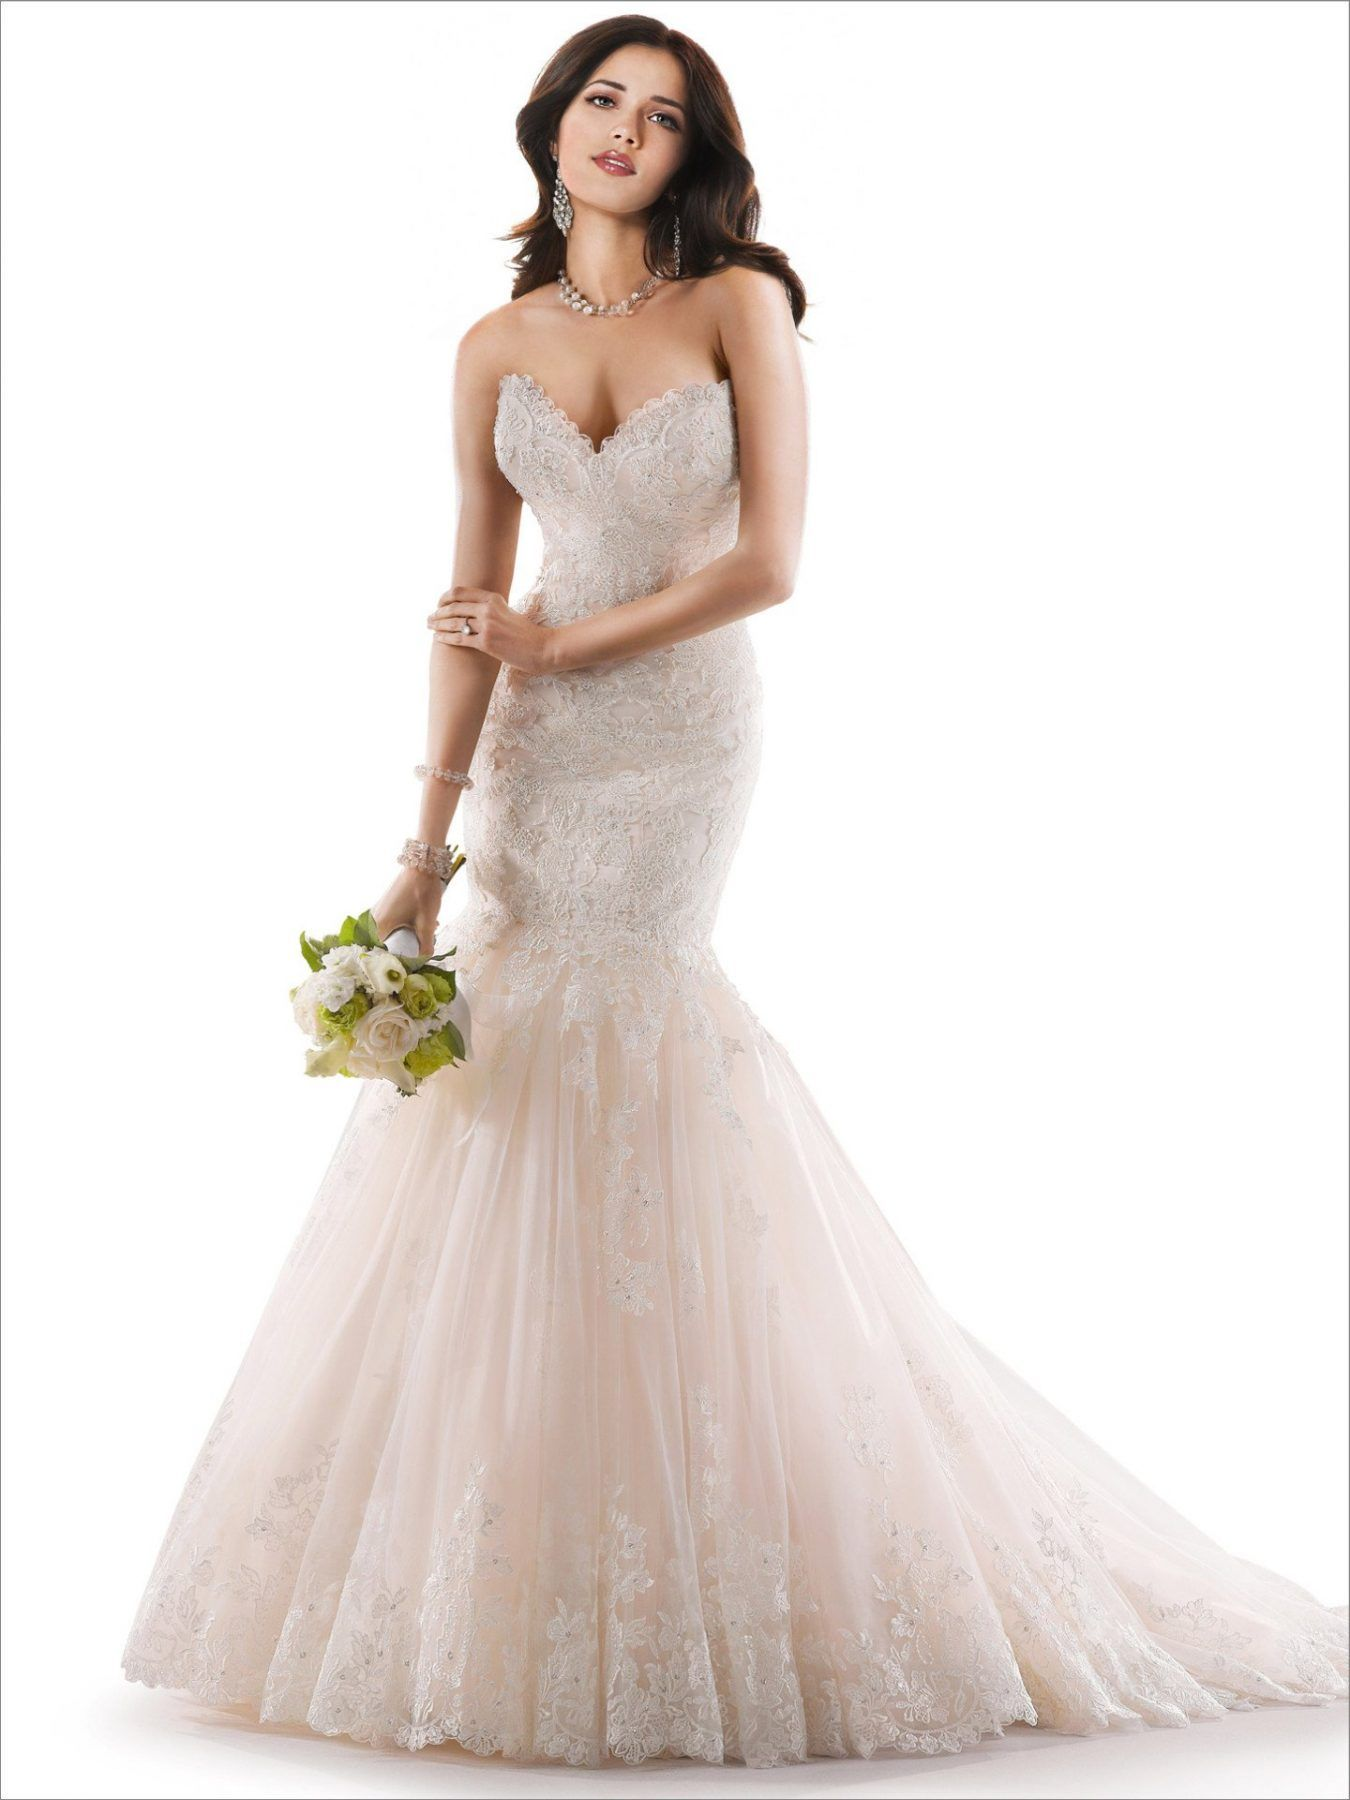 Lace sweetheart wedding dress  Blush beaded lace sweetheart neckline fit and flare tulle skirt